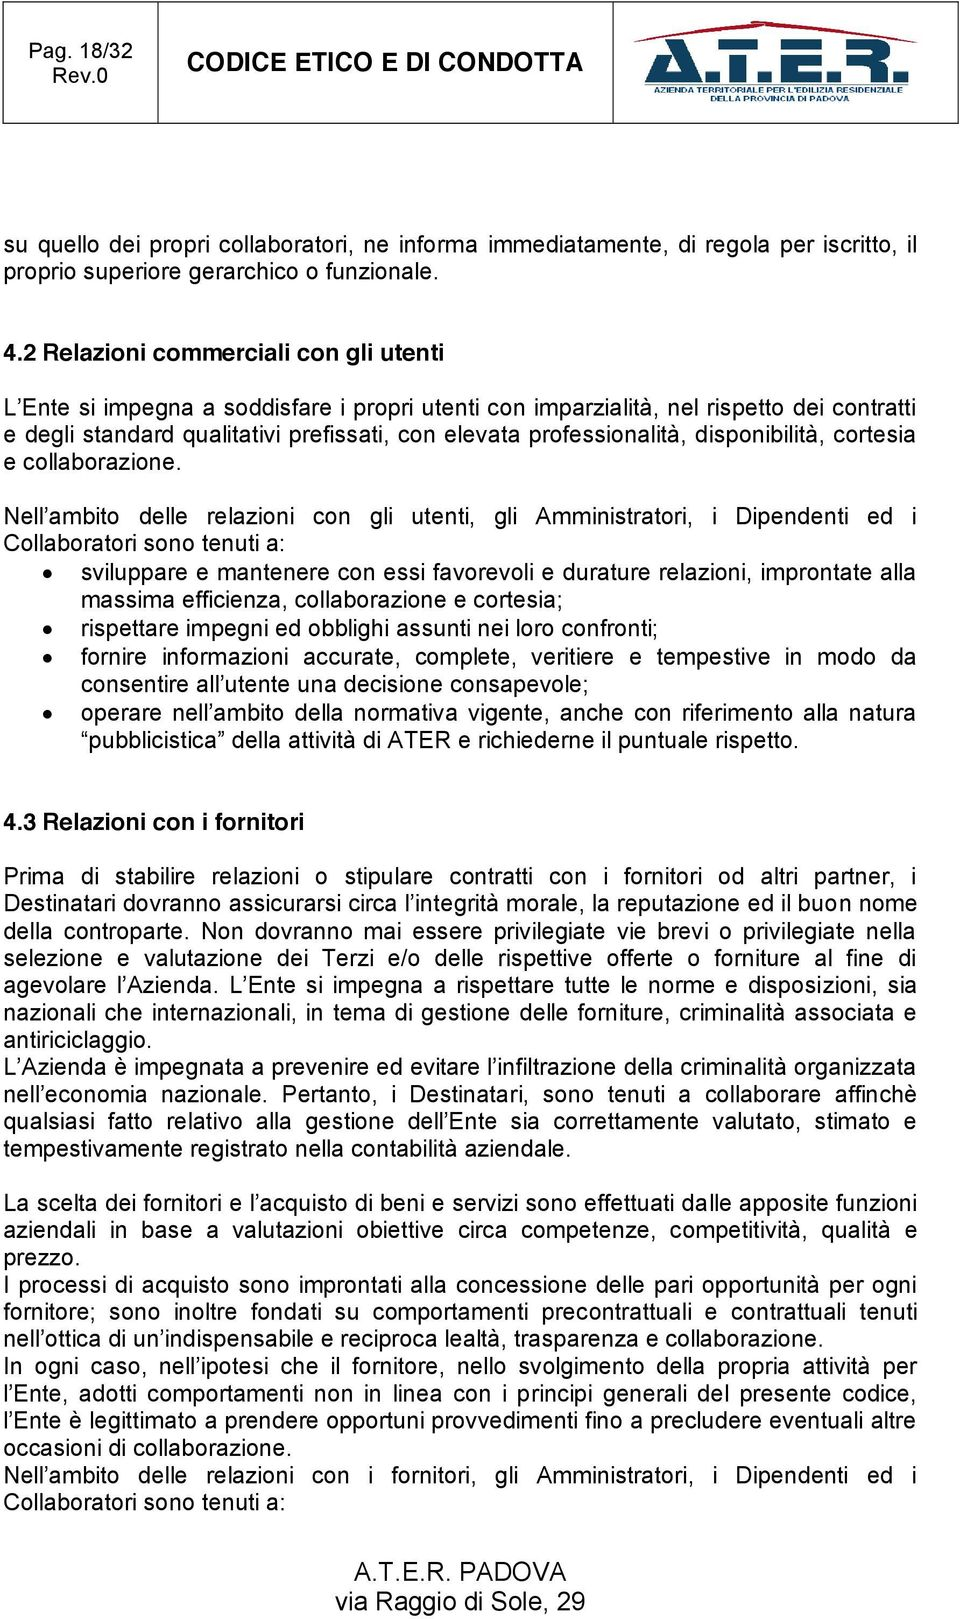 professionalità, disponibilità, cortesia e collaborazione.